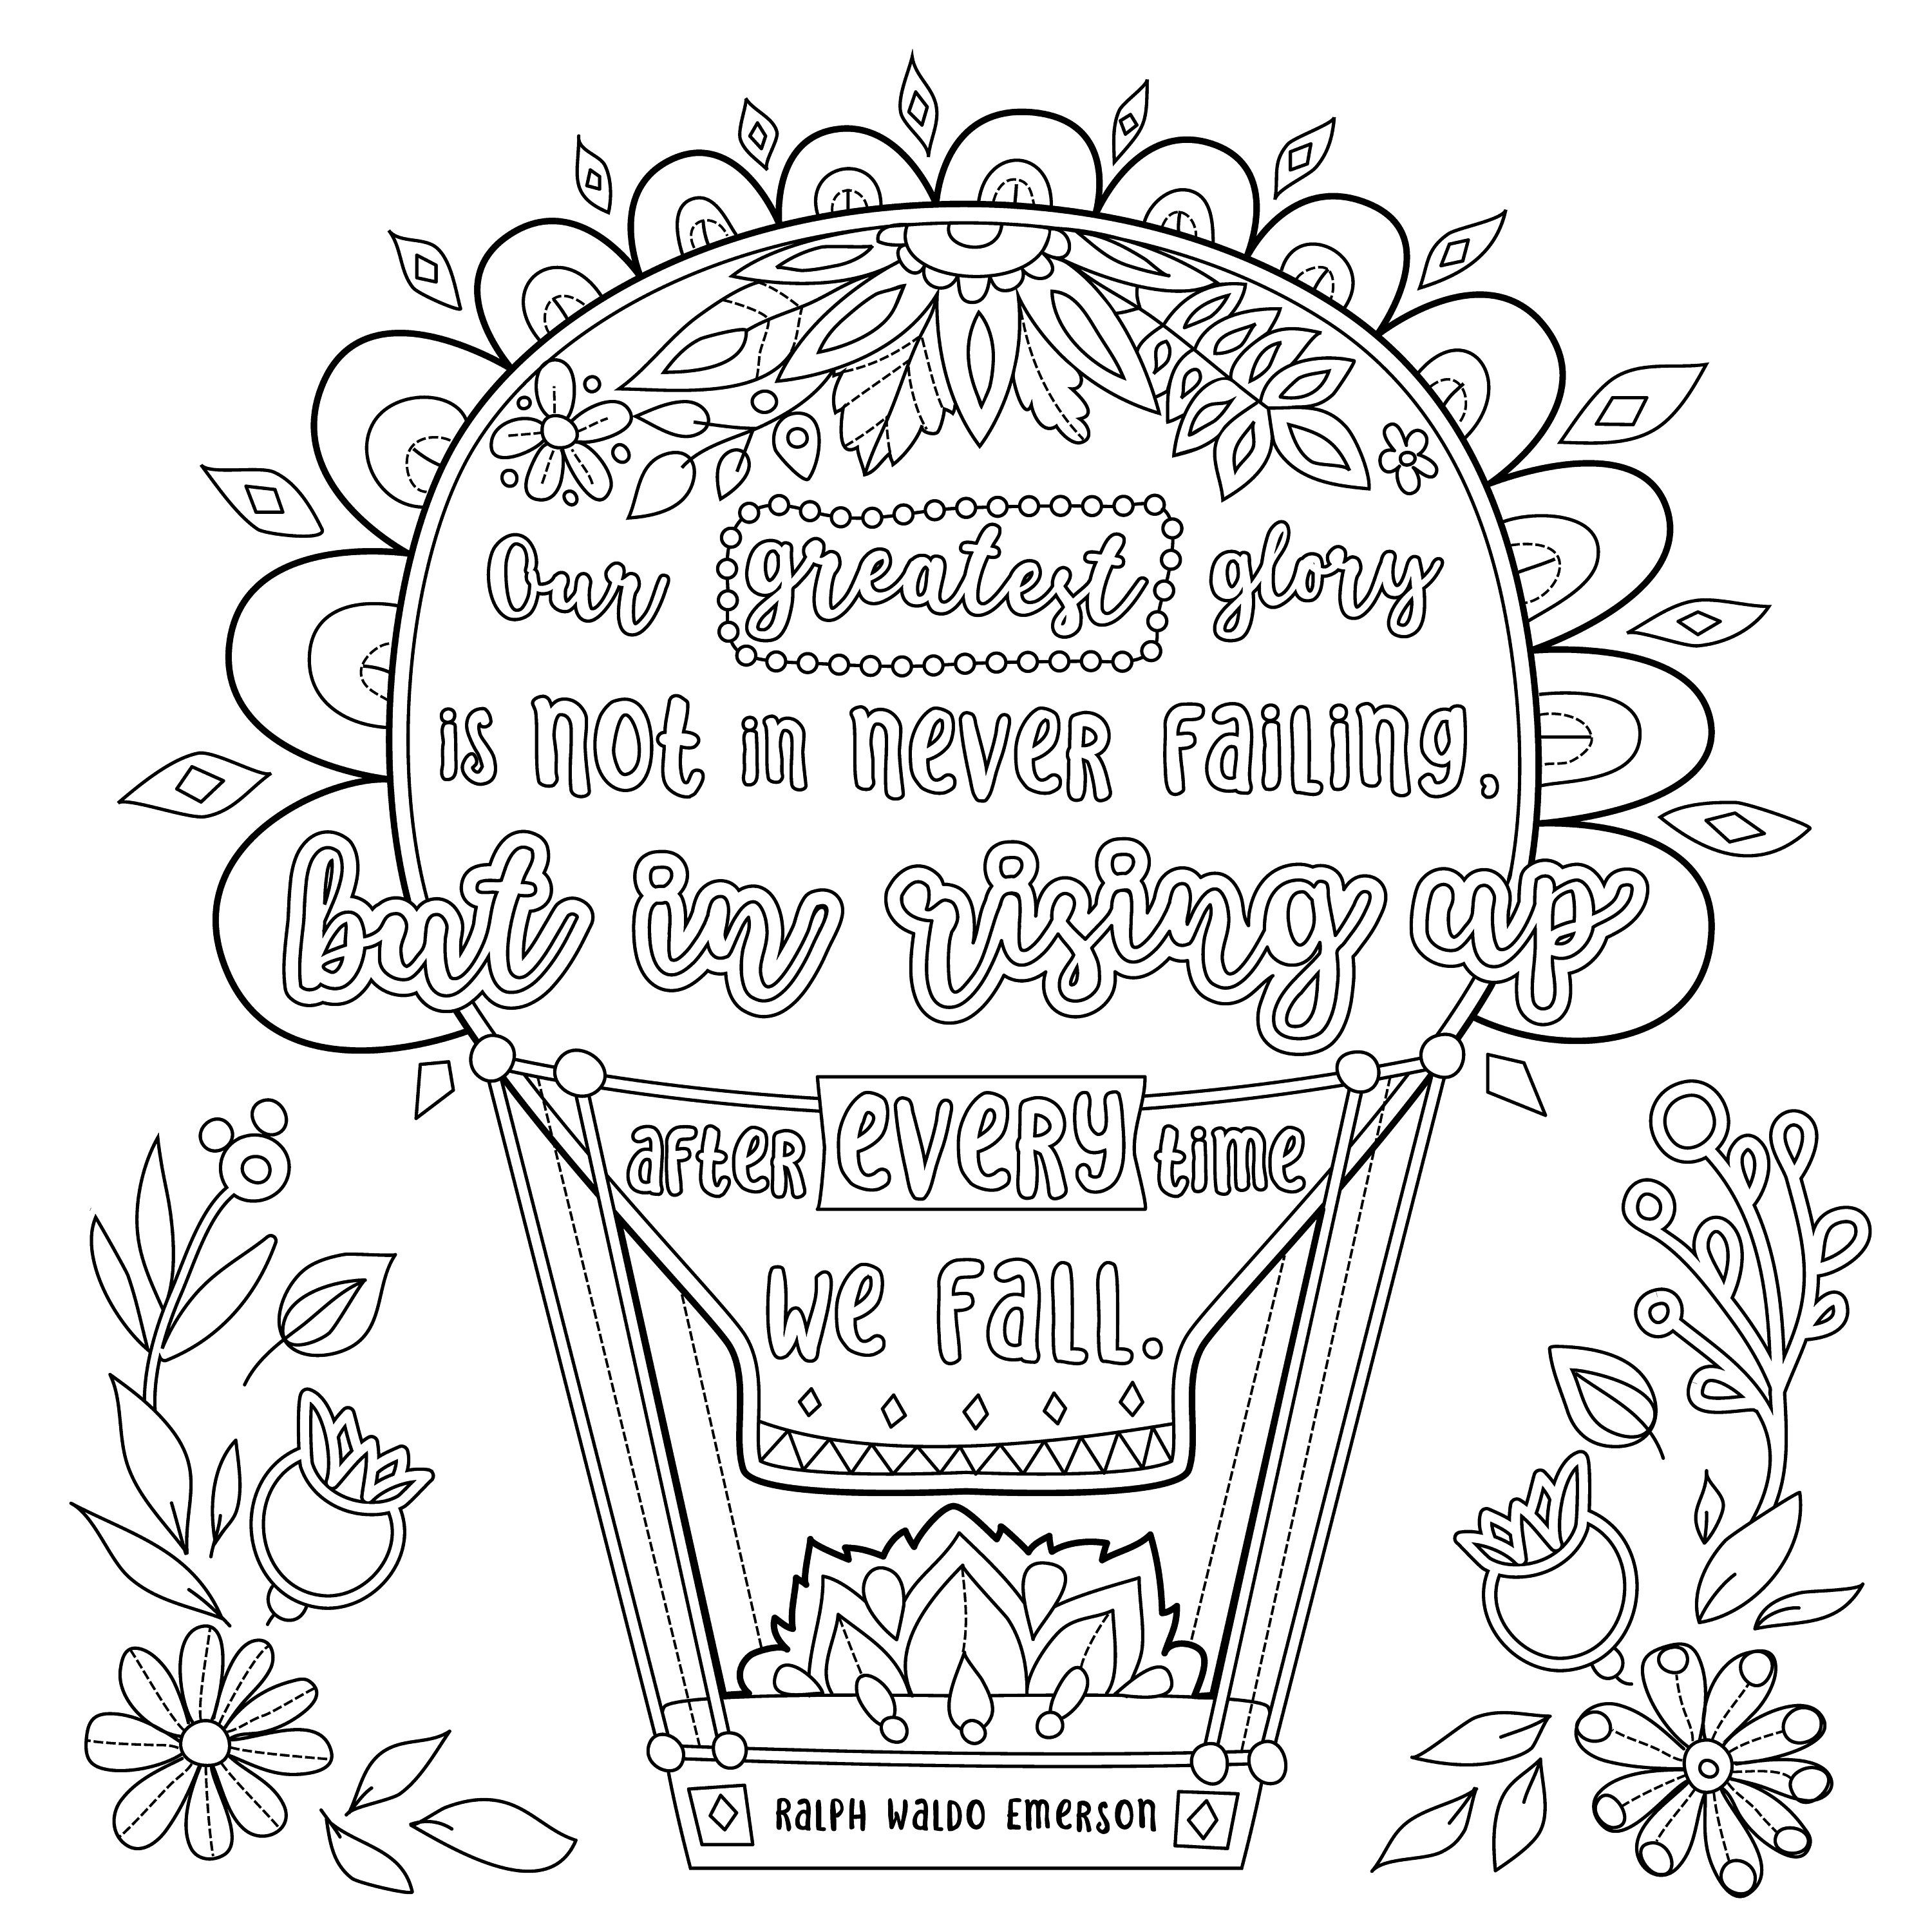 3 Motivational Printable Coloring Pages Zentangle Coloring Book In 2021 Coloring Books Quote Coloring Pages Coloring Pages